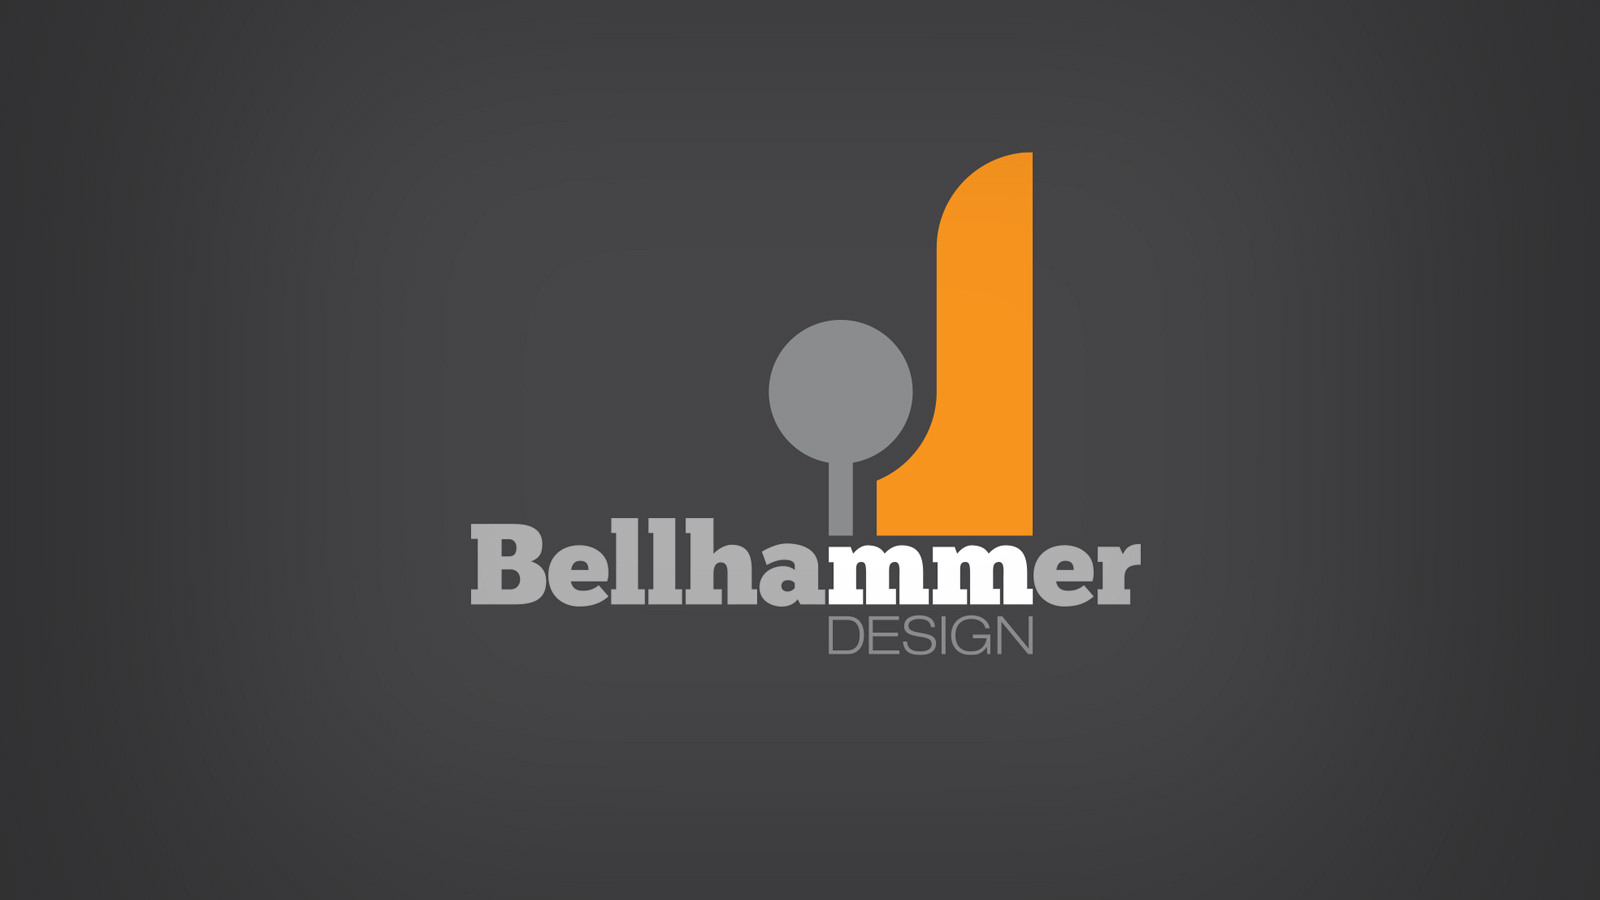 Bellhammer 3D Jewelry Design Logo